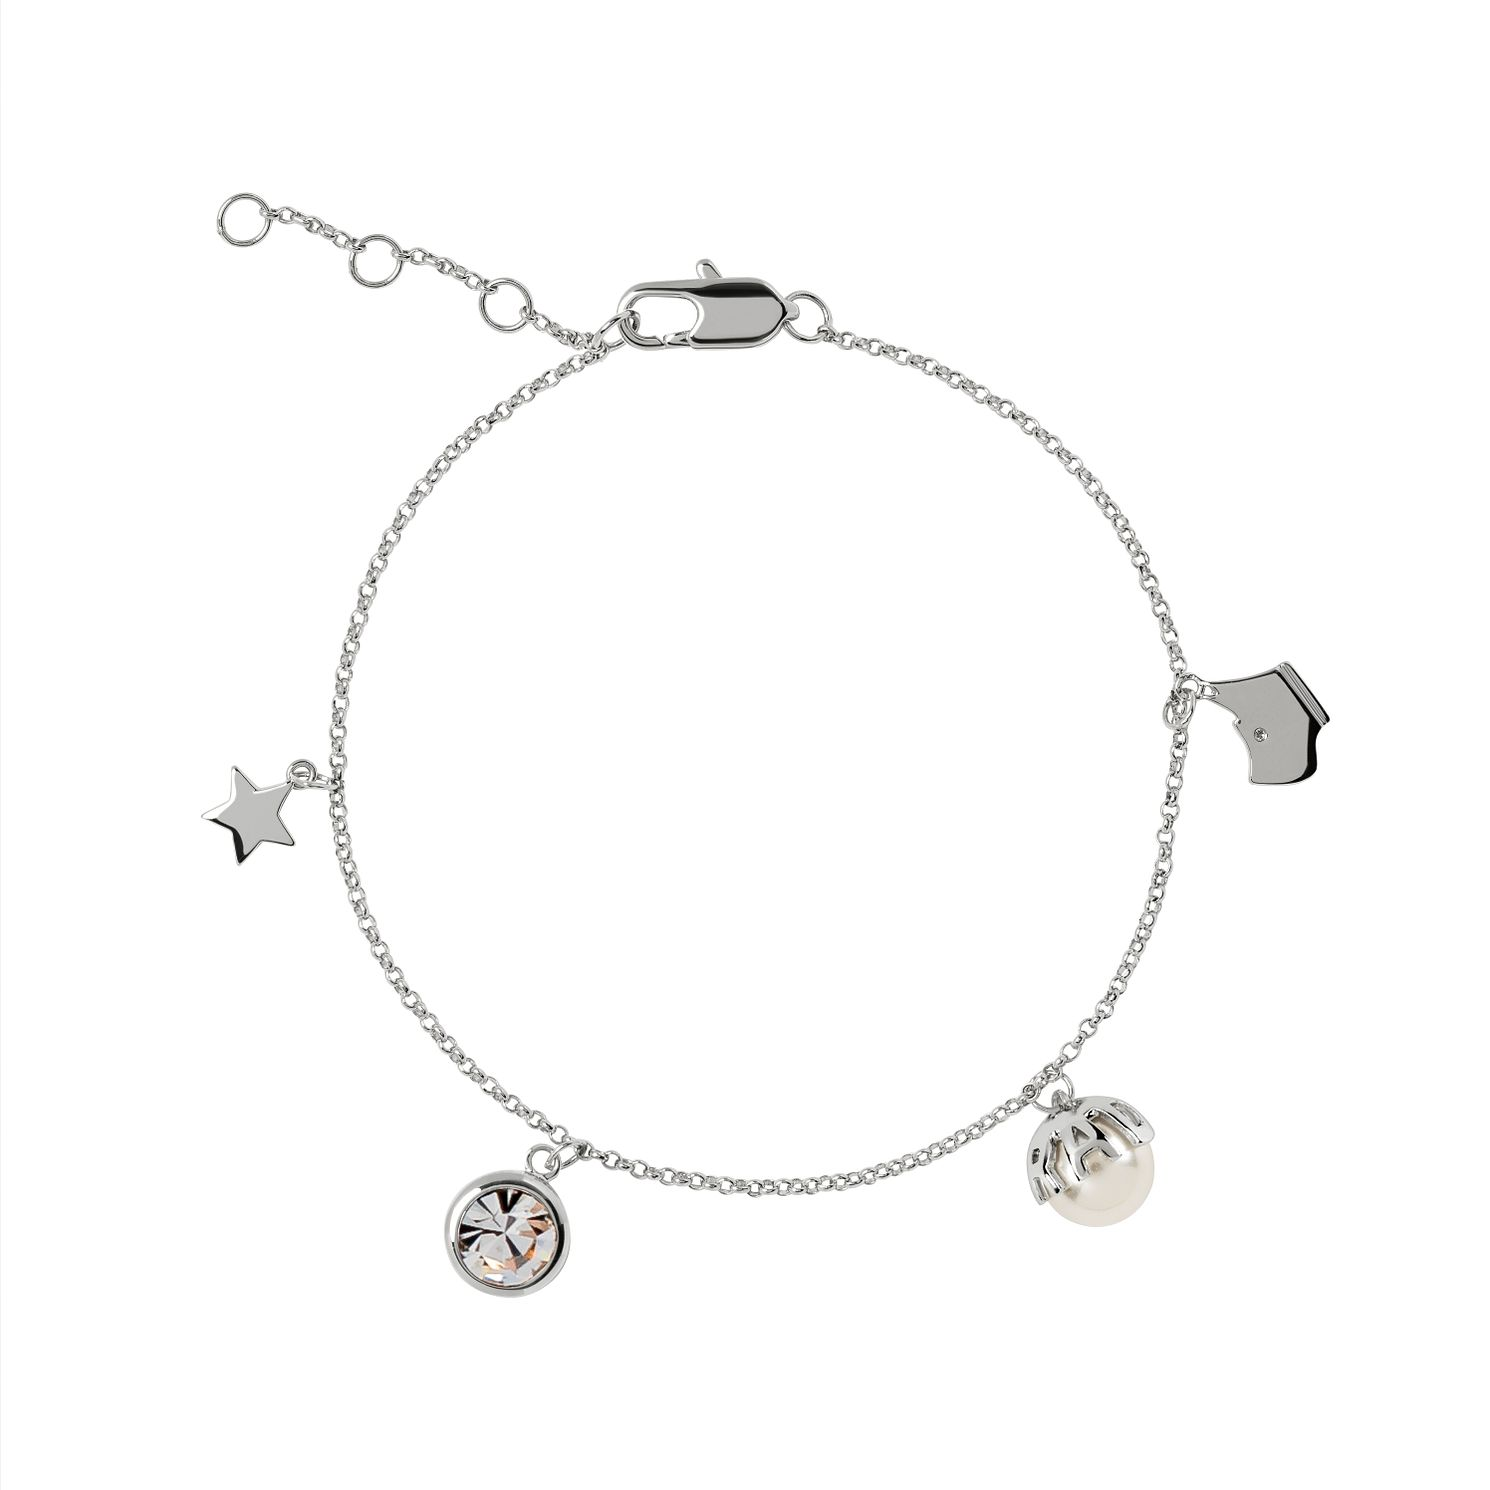 Radley Silver Tone Pearl & Star Charm Bracelet - Product number 6088651